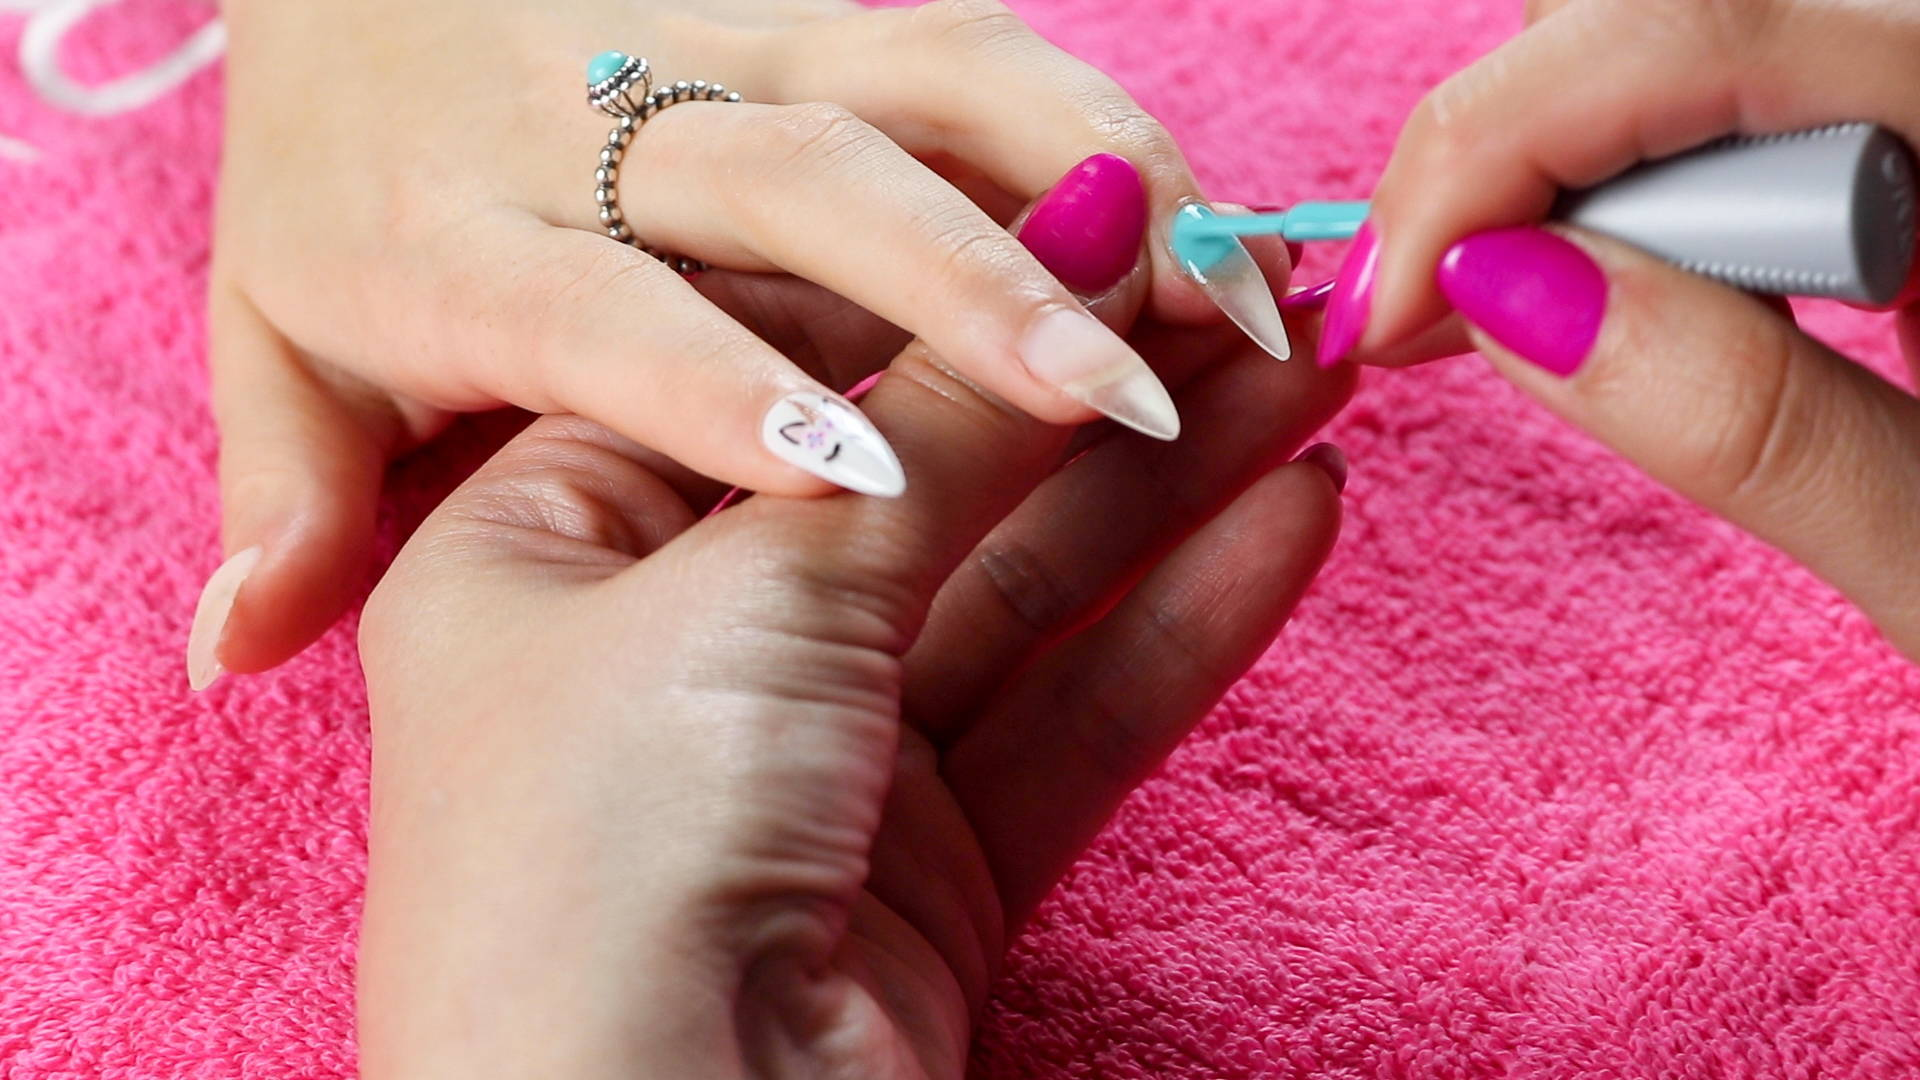 Unicorn nail art detail being painted onto a nail using ORLY GelFX Gumdrop